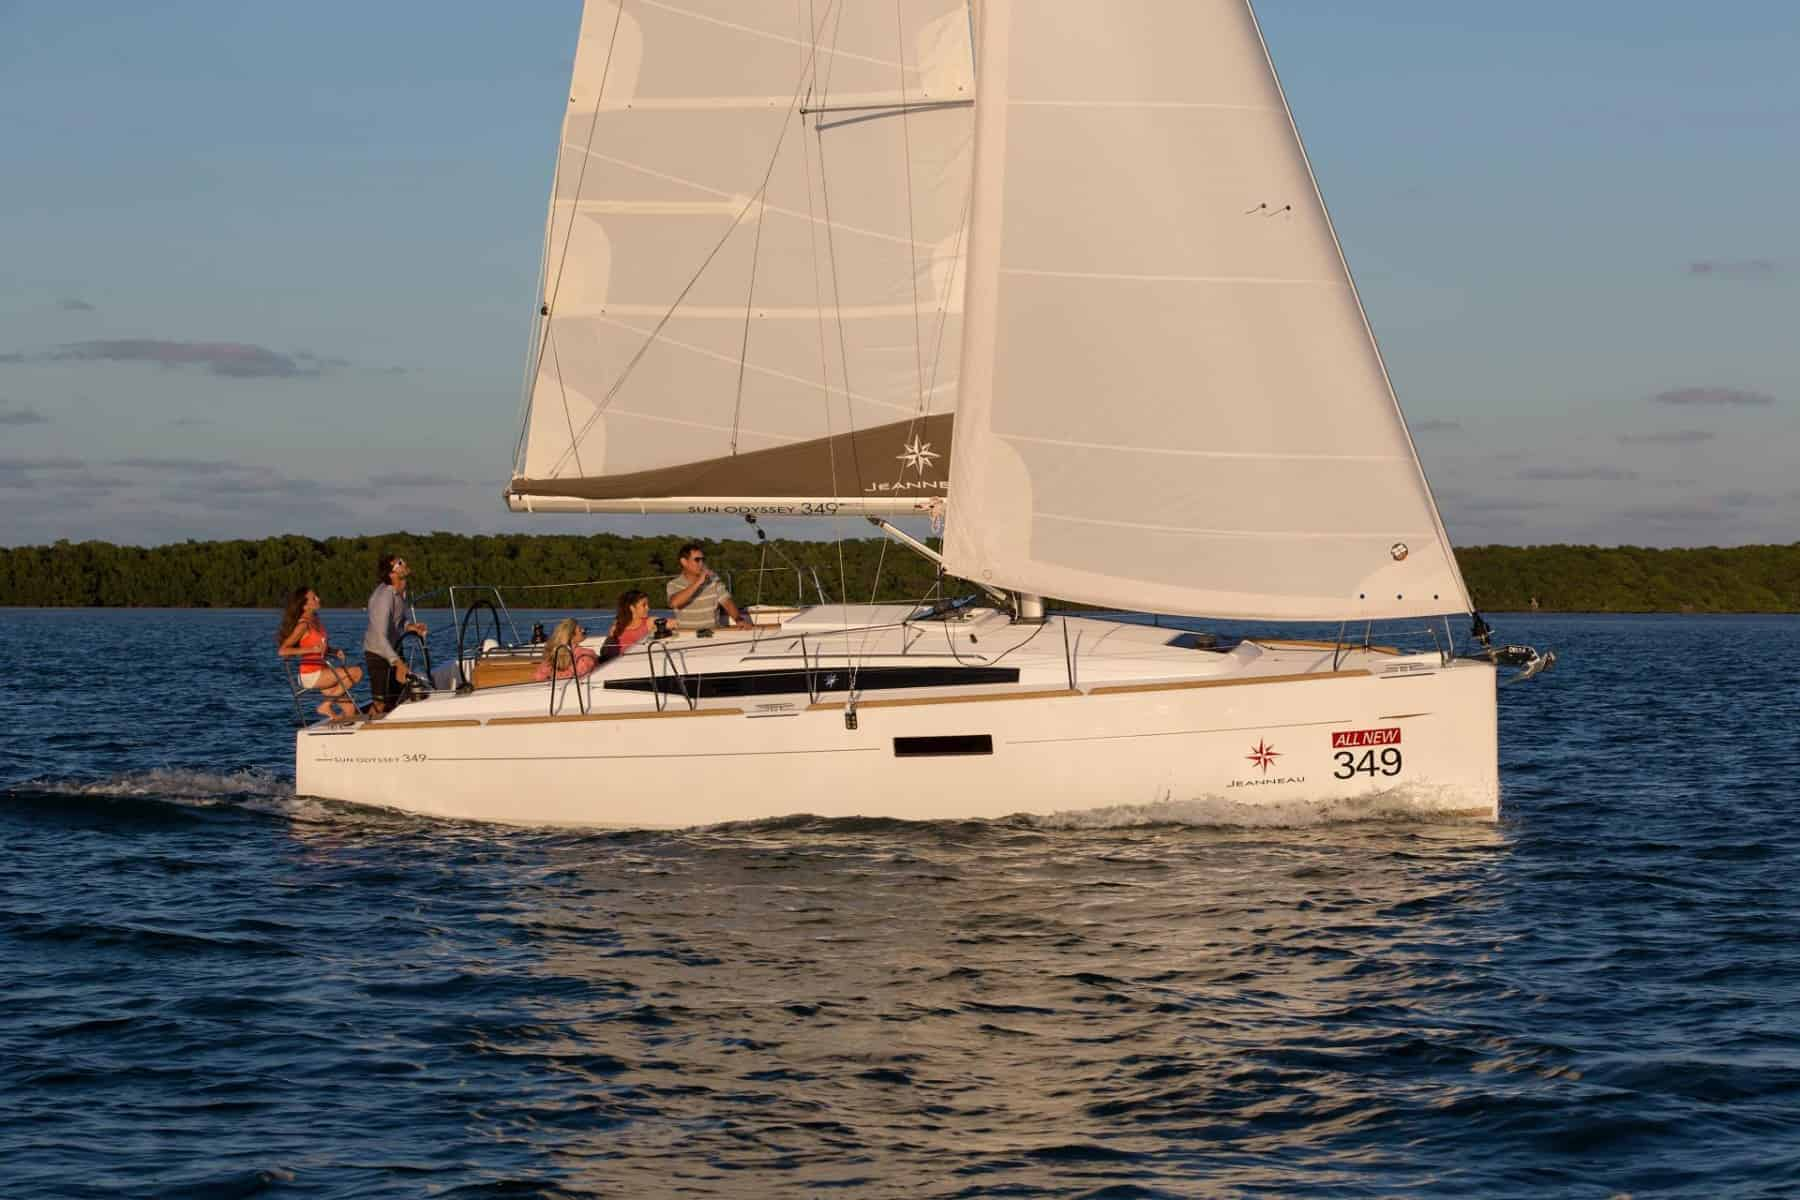 A Jeanneau Sun Odyssey 349 sailing on calm water with a party of people hanging out on deck